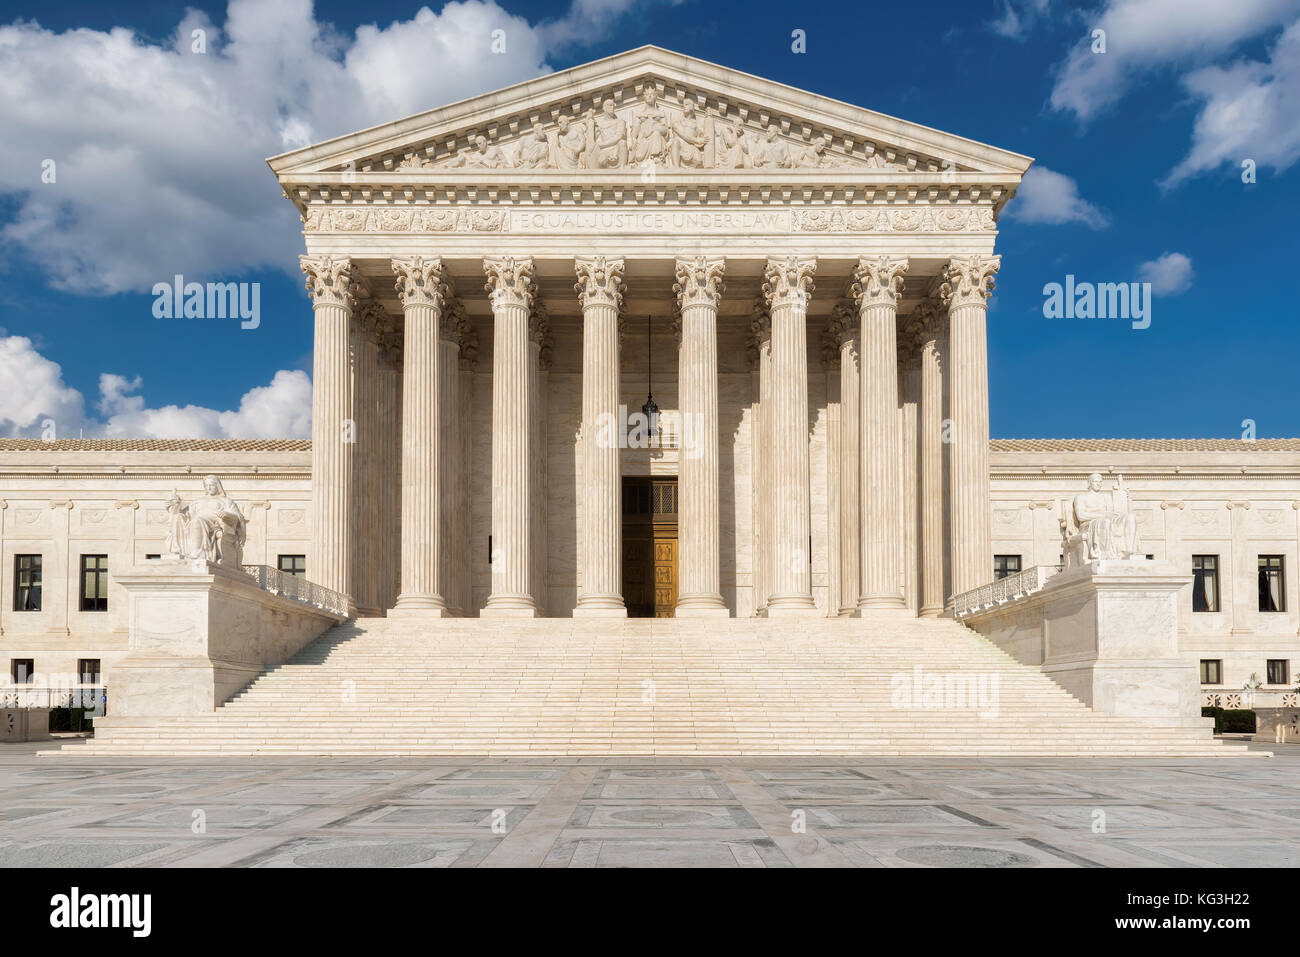 United States Supreme Court Building and fountain at sunny day in Washington DC, USA. - Stock Image